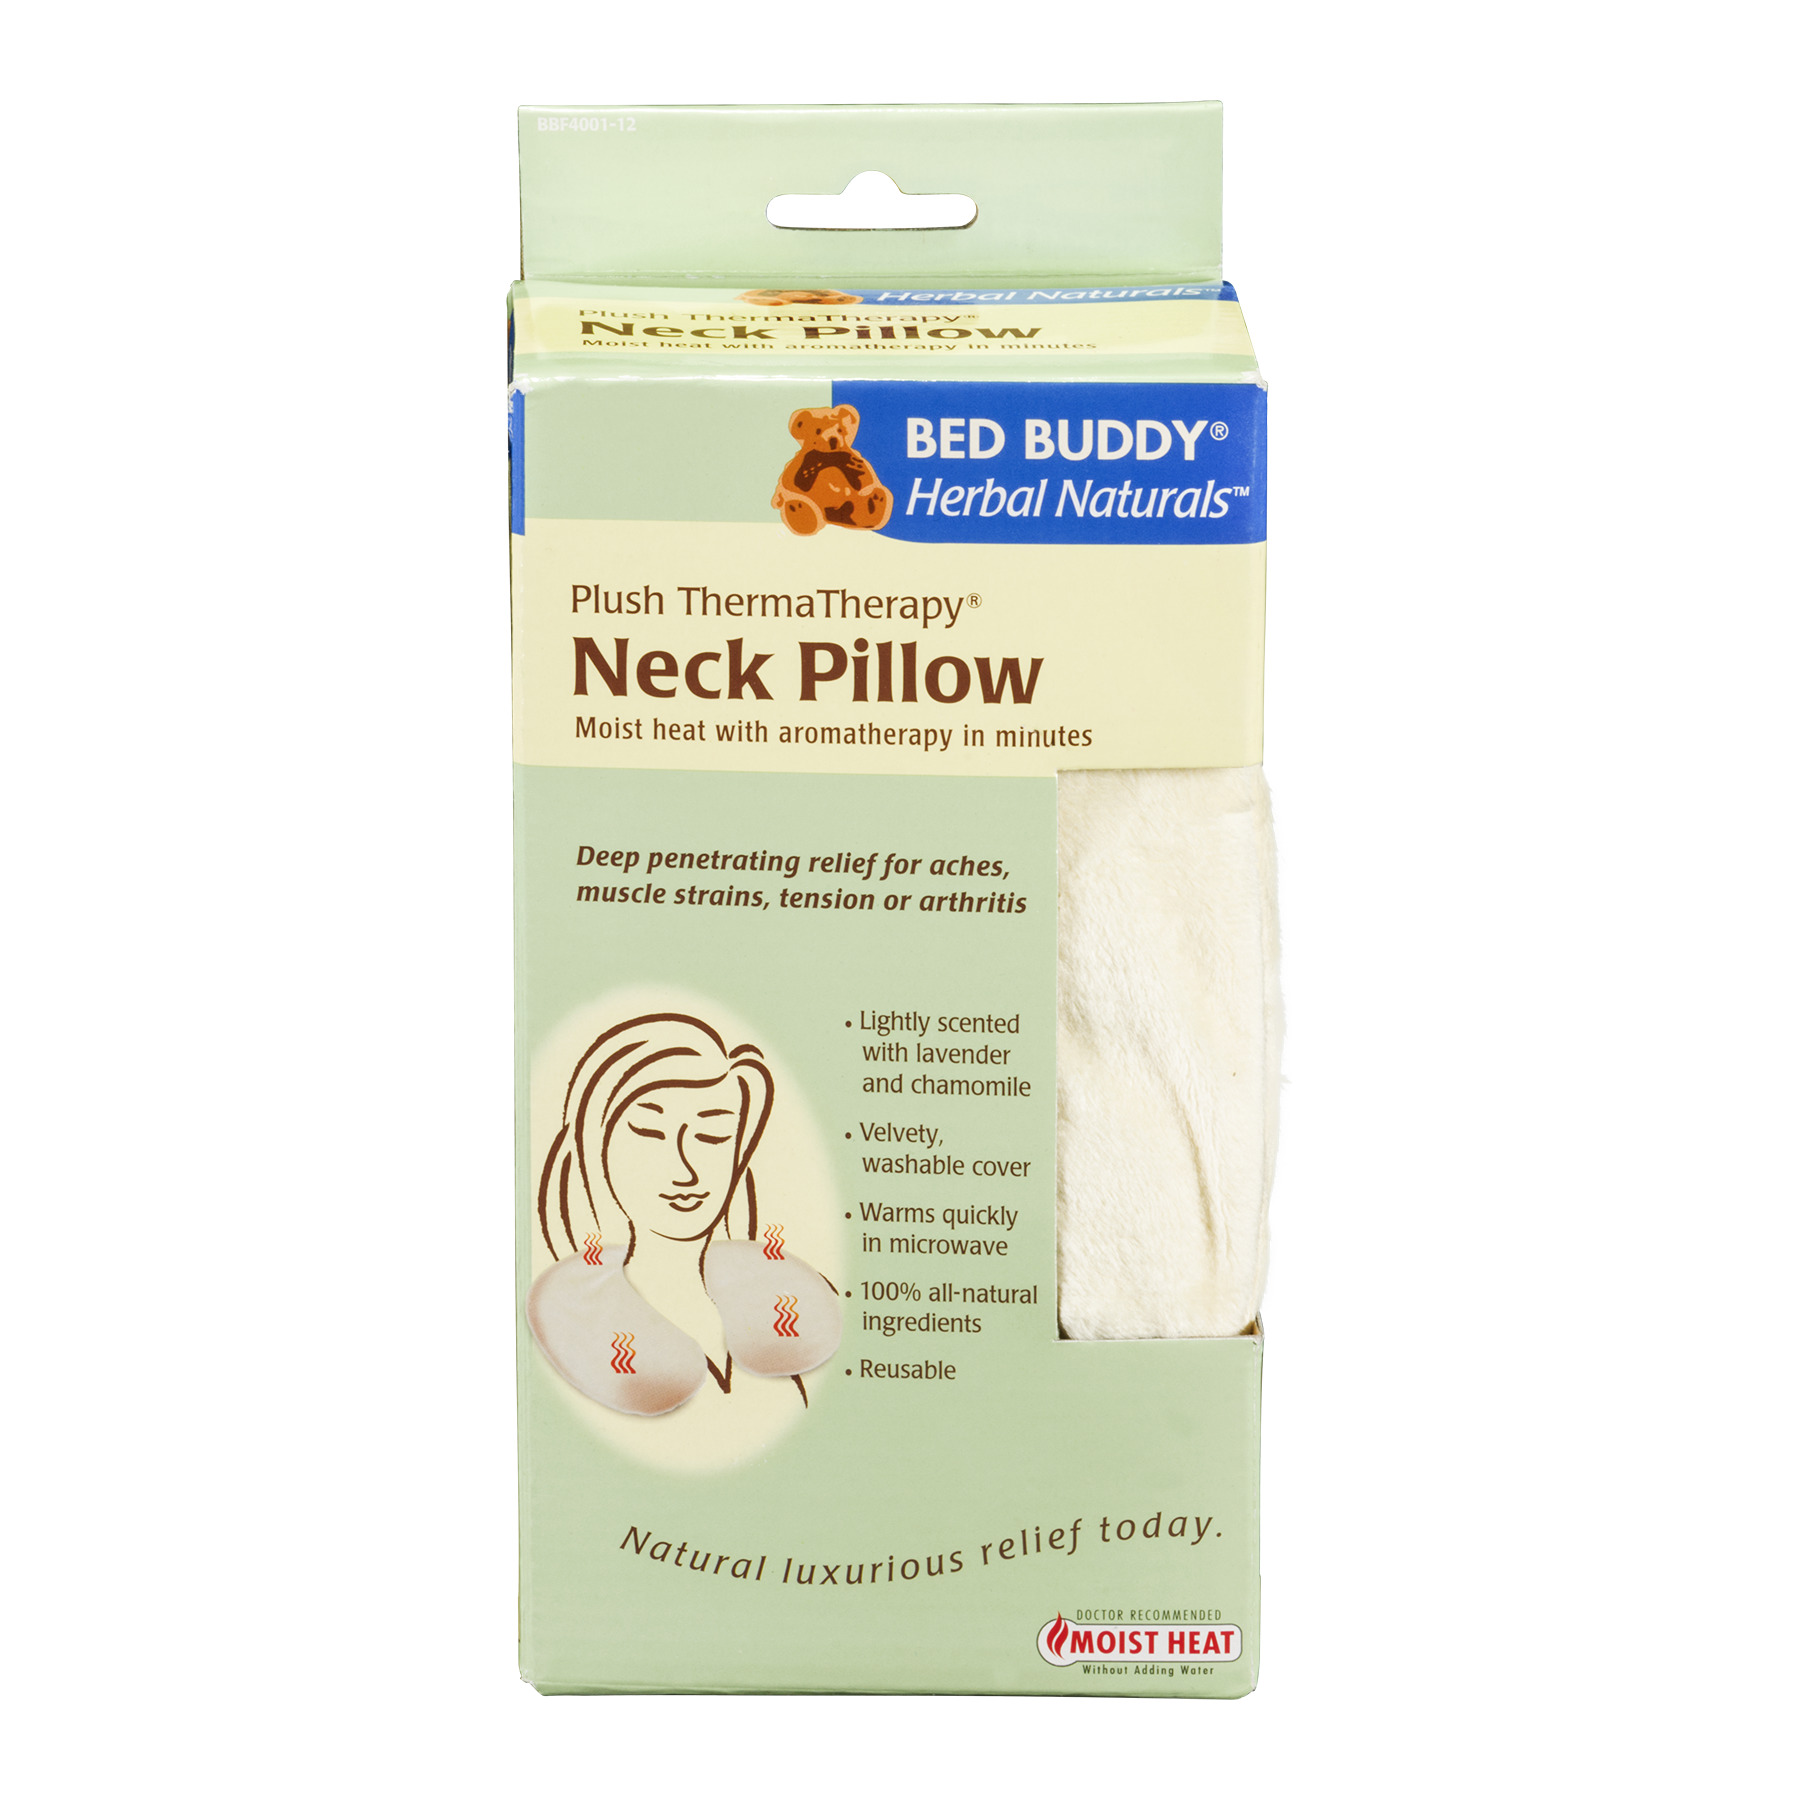 Bed Buddy Herbal Naturals Moist Heat with Aromatherapy Neck Pillow